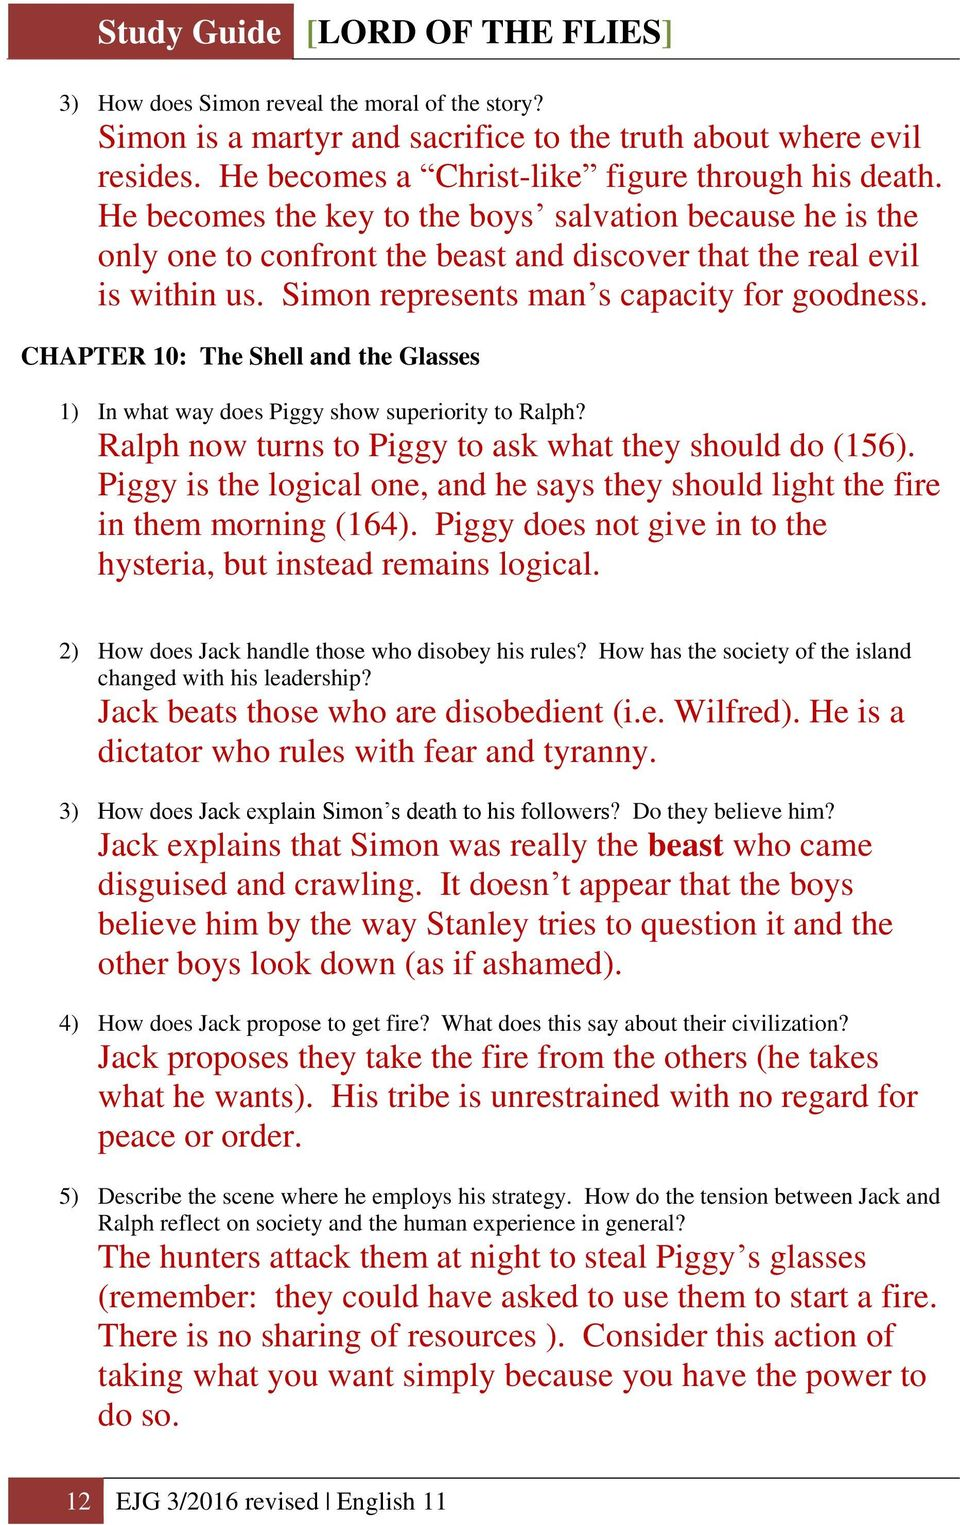 questions to ask about lord of the flies